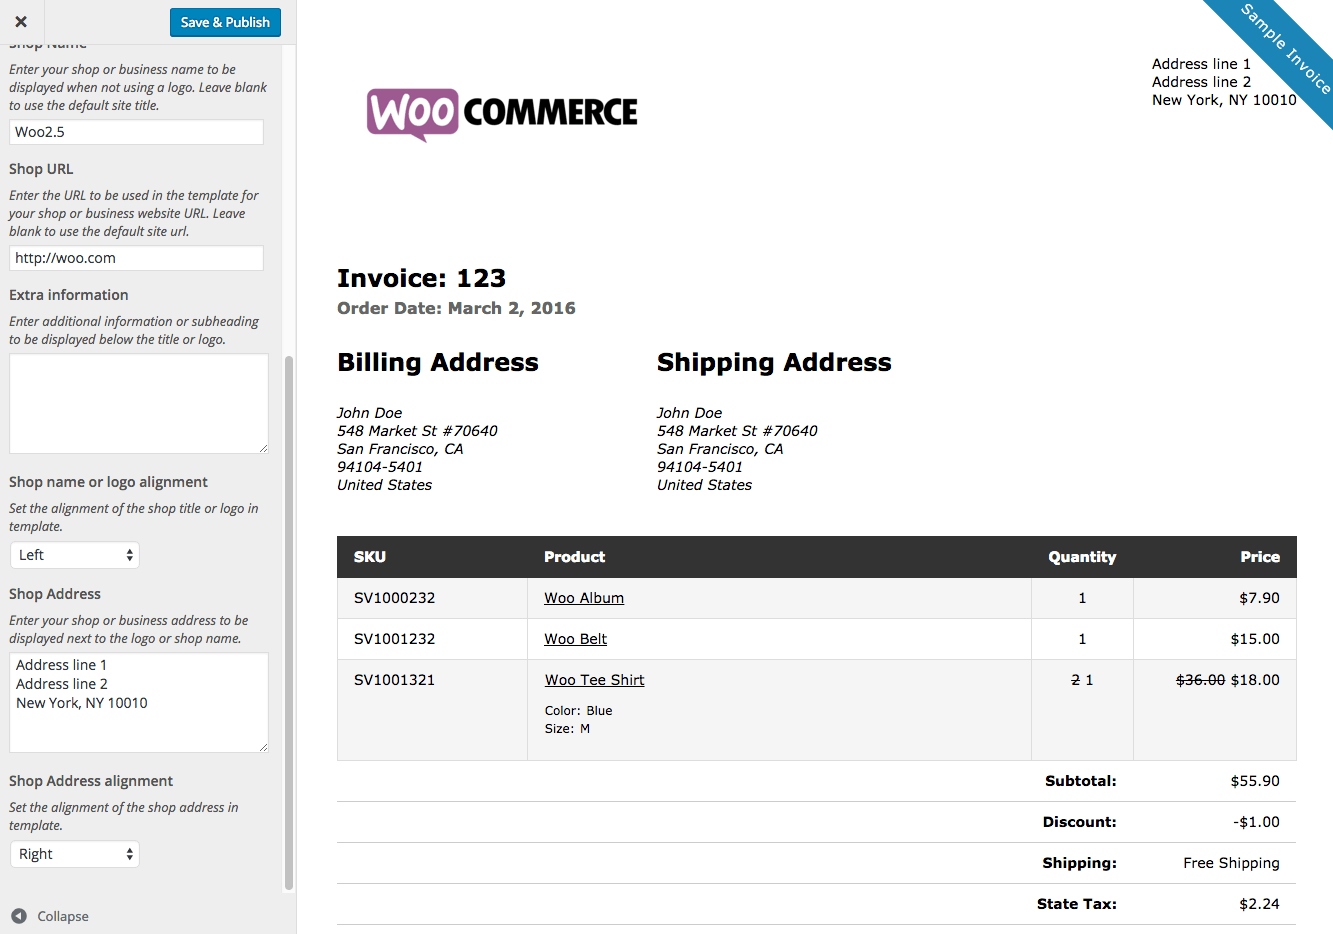 Soulfulpowerus  Wonderful Woocommerce Print Invoices Amp Packing Lists  Woocommerce Docs With Exciting Woocommerce Print Invoices  Packing Lists Customizer With Astounding Home Depot Receipt Also Receipt Hog Reviews In Addition Tj Maxx Return Without Receipt And Does The Entity Have Zero Texas Gross Receipts As Well As Return Without Receipt Walmart Additionally How To Fill Out Receipt Book From Docswoocommercecom With Soulfulpowerus  Exciting Woocommerce Print Invoices Amp Packing Lists  Woocommerce Docs With Astounding Woocommerce Print Invoices  Packing Lists Customizer And Wonderful Home Depot Receipt Also Receipt Hog Reviews In Addition Tj Maxx Return Without Receipt From Docswoocommercecom